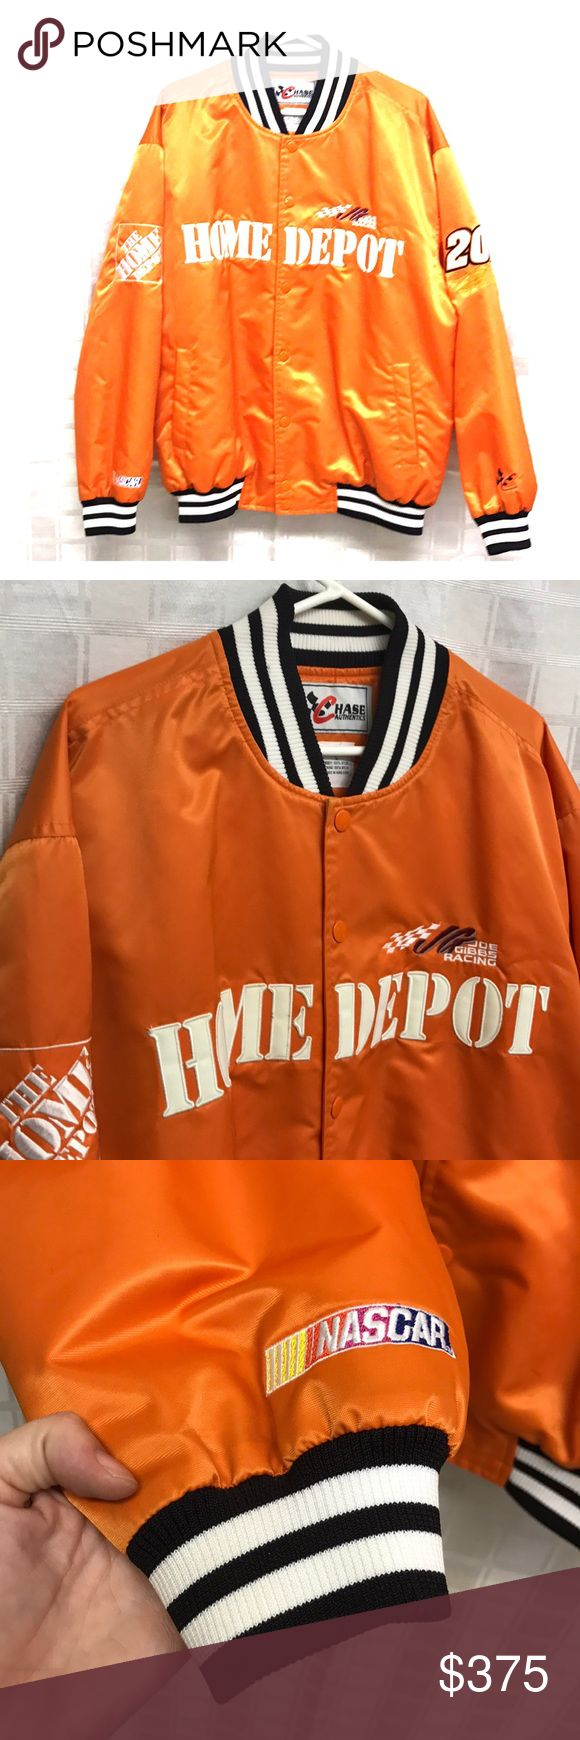 RARE Men's NASCAR Bomber Jacket Bright orange Joe Gibbs Home Depot Bomber jacket size Large. Aside from the pointed out areas in photos, this jacket is in overall excellent condition! Also FYI, someone tried to steal this out of my cart when I was shopping! NEVER!!!! Jackets & Coats Bomber & Varsity